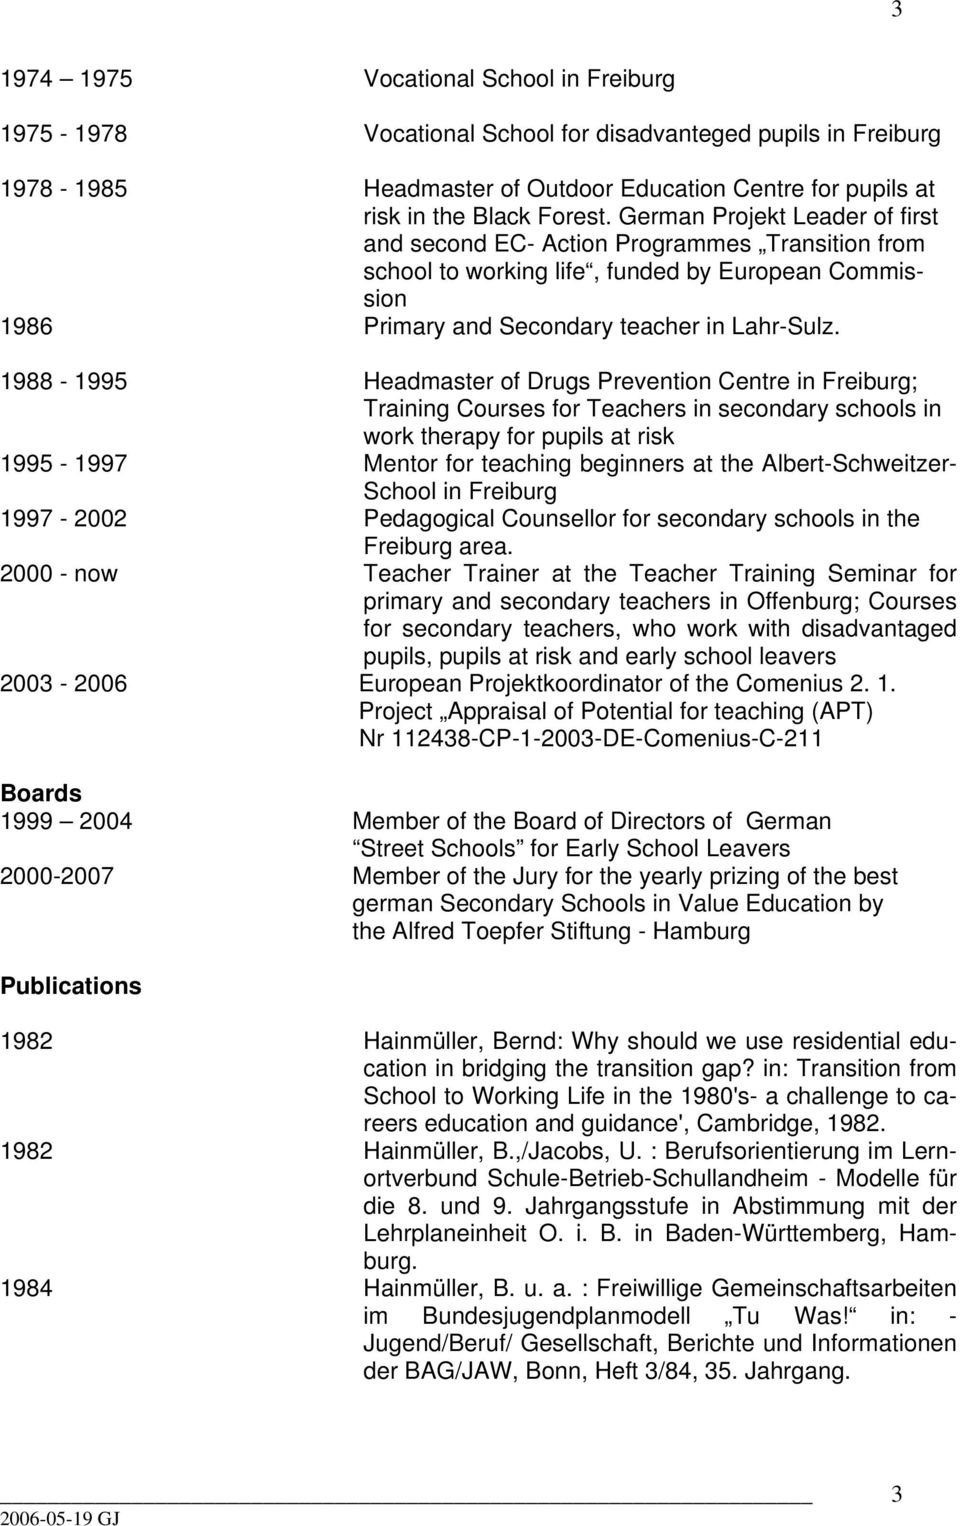 1988-1995 Headmaster of Drugs Prevention Centre in Freiburg; Training Courses for Teachers in secondary schools in work therapy for pupils at risk 1995-1997 Mentor for teaching beginners at the